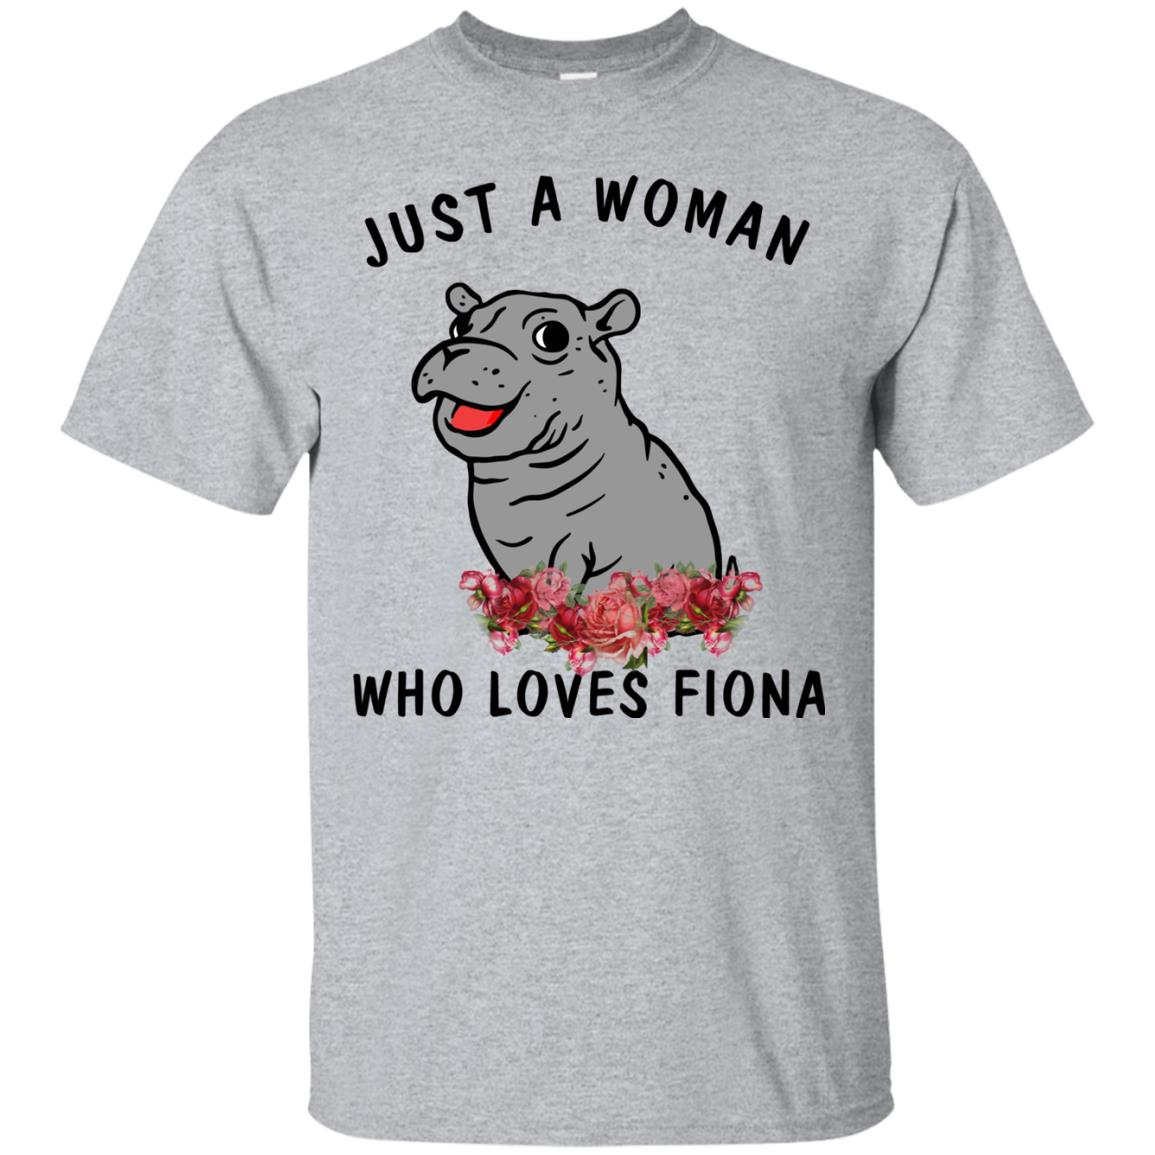 who loves a woman